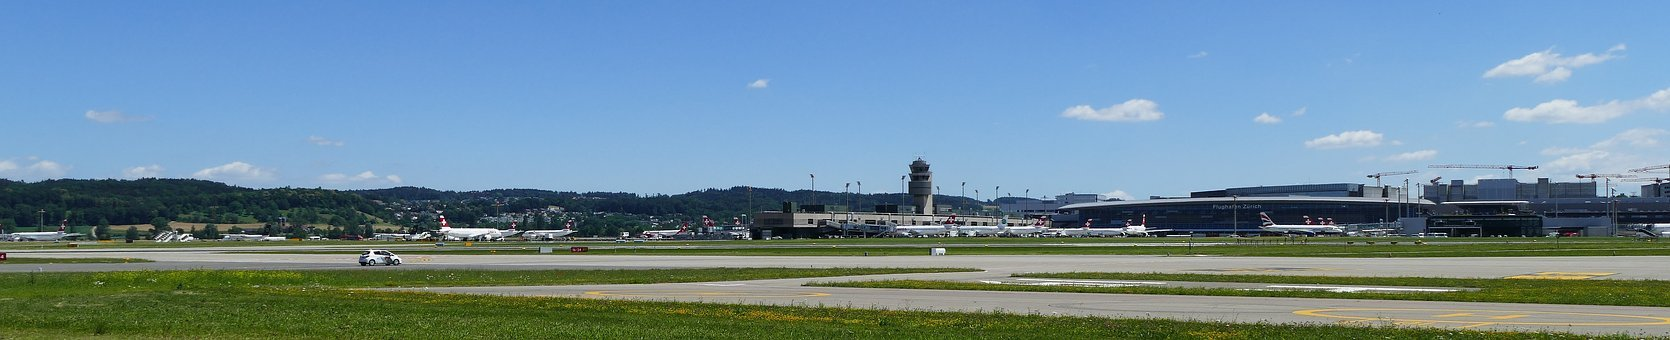 Panorama, Airport, Zurich, Balls, Sunny, Slopes, Tower